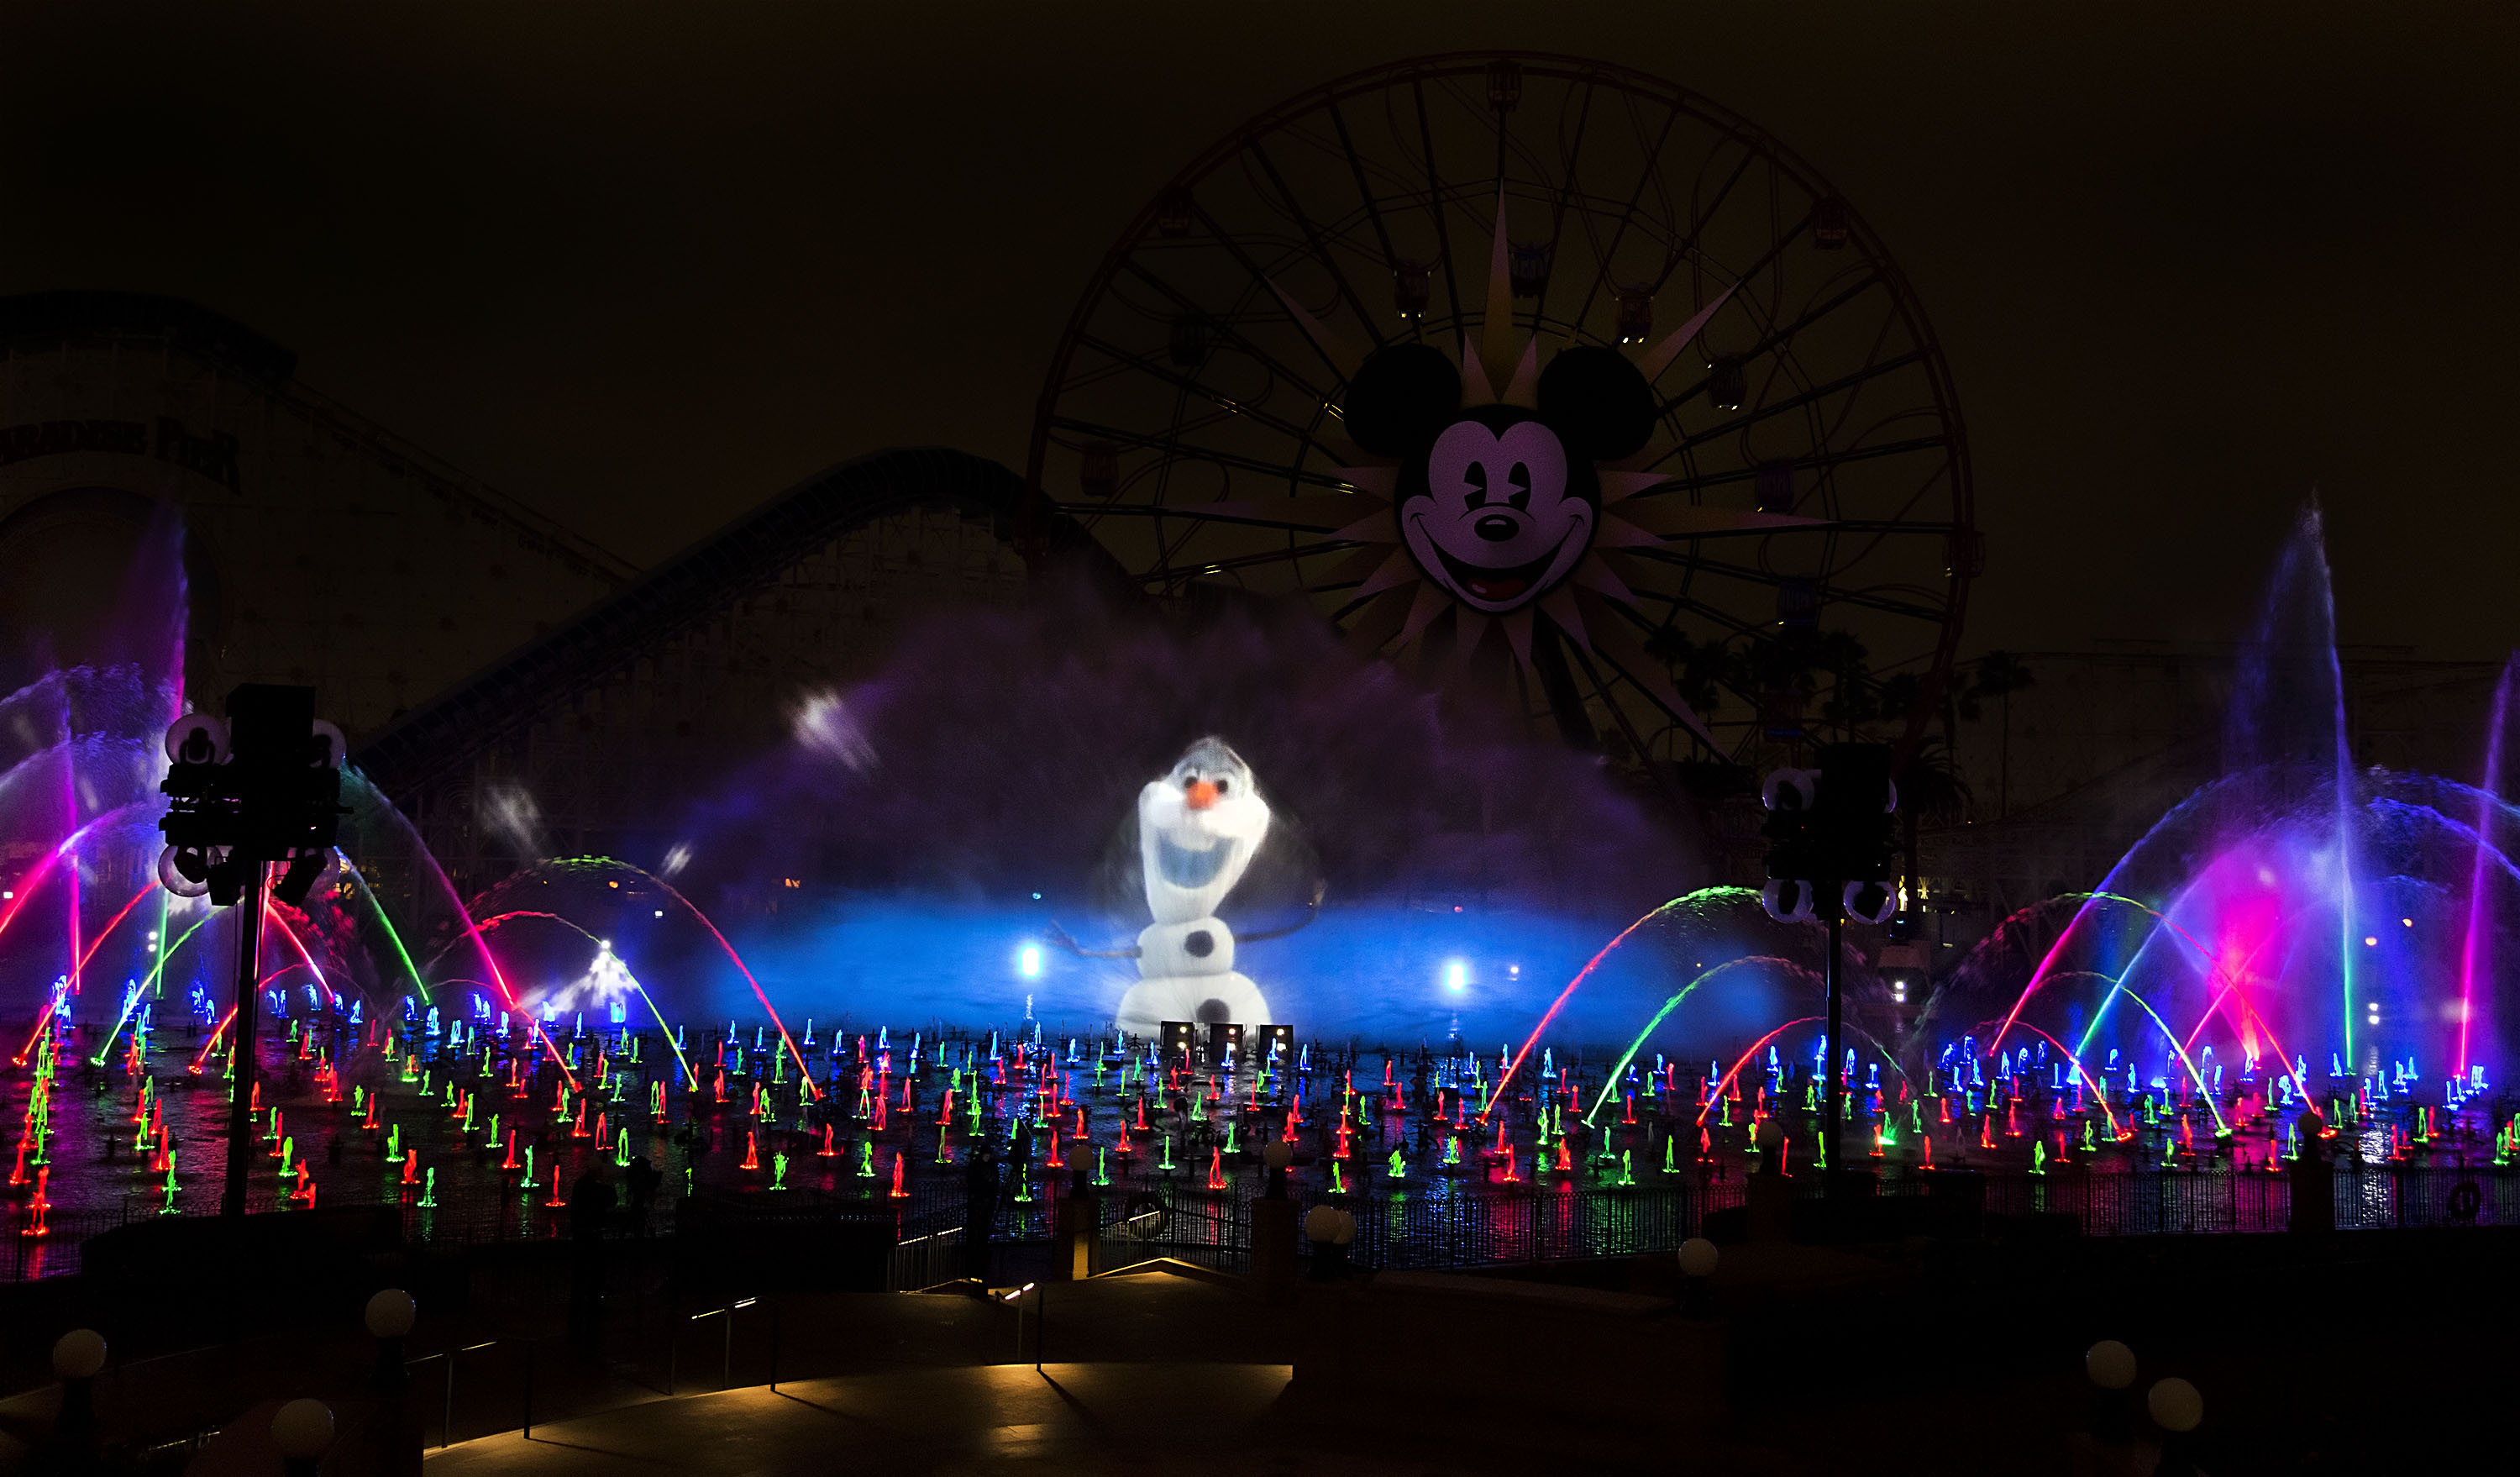 'World of Color' - Winter Dreams at Disney California Adventure Park